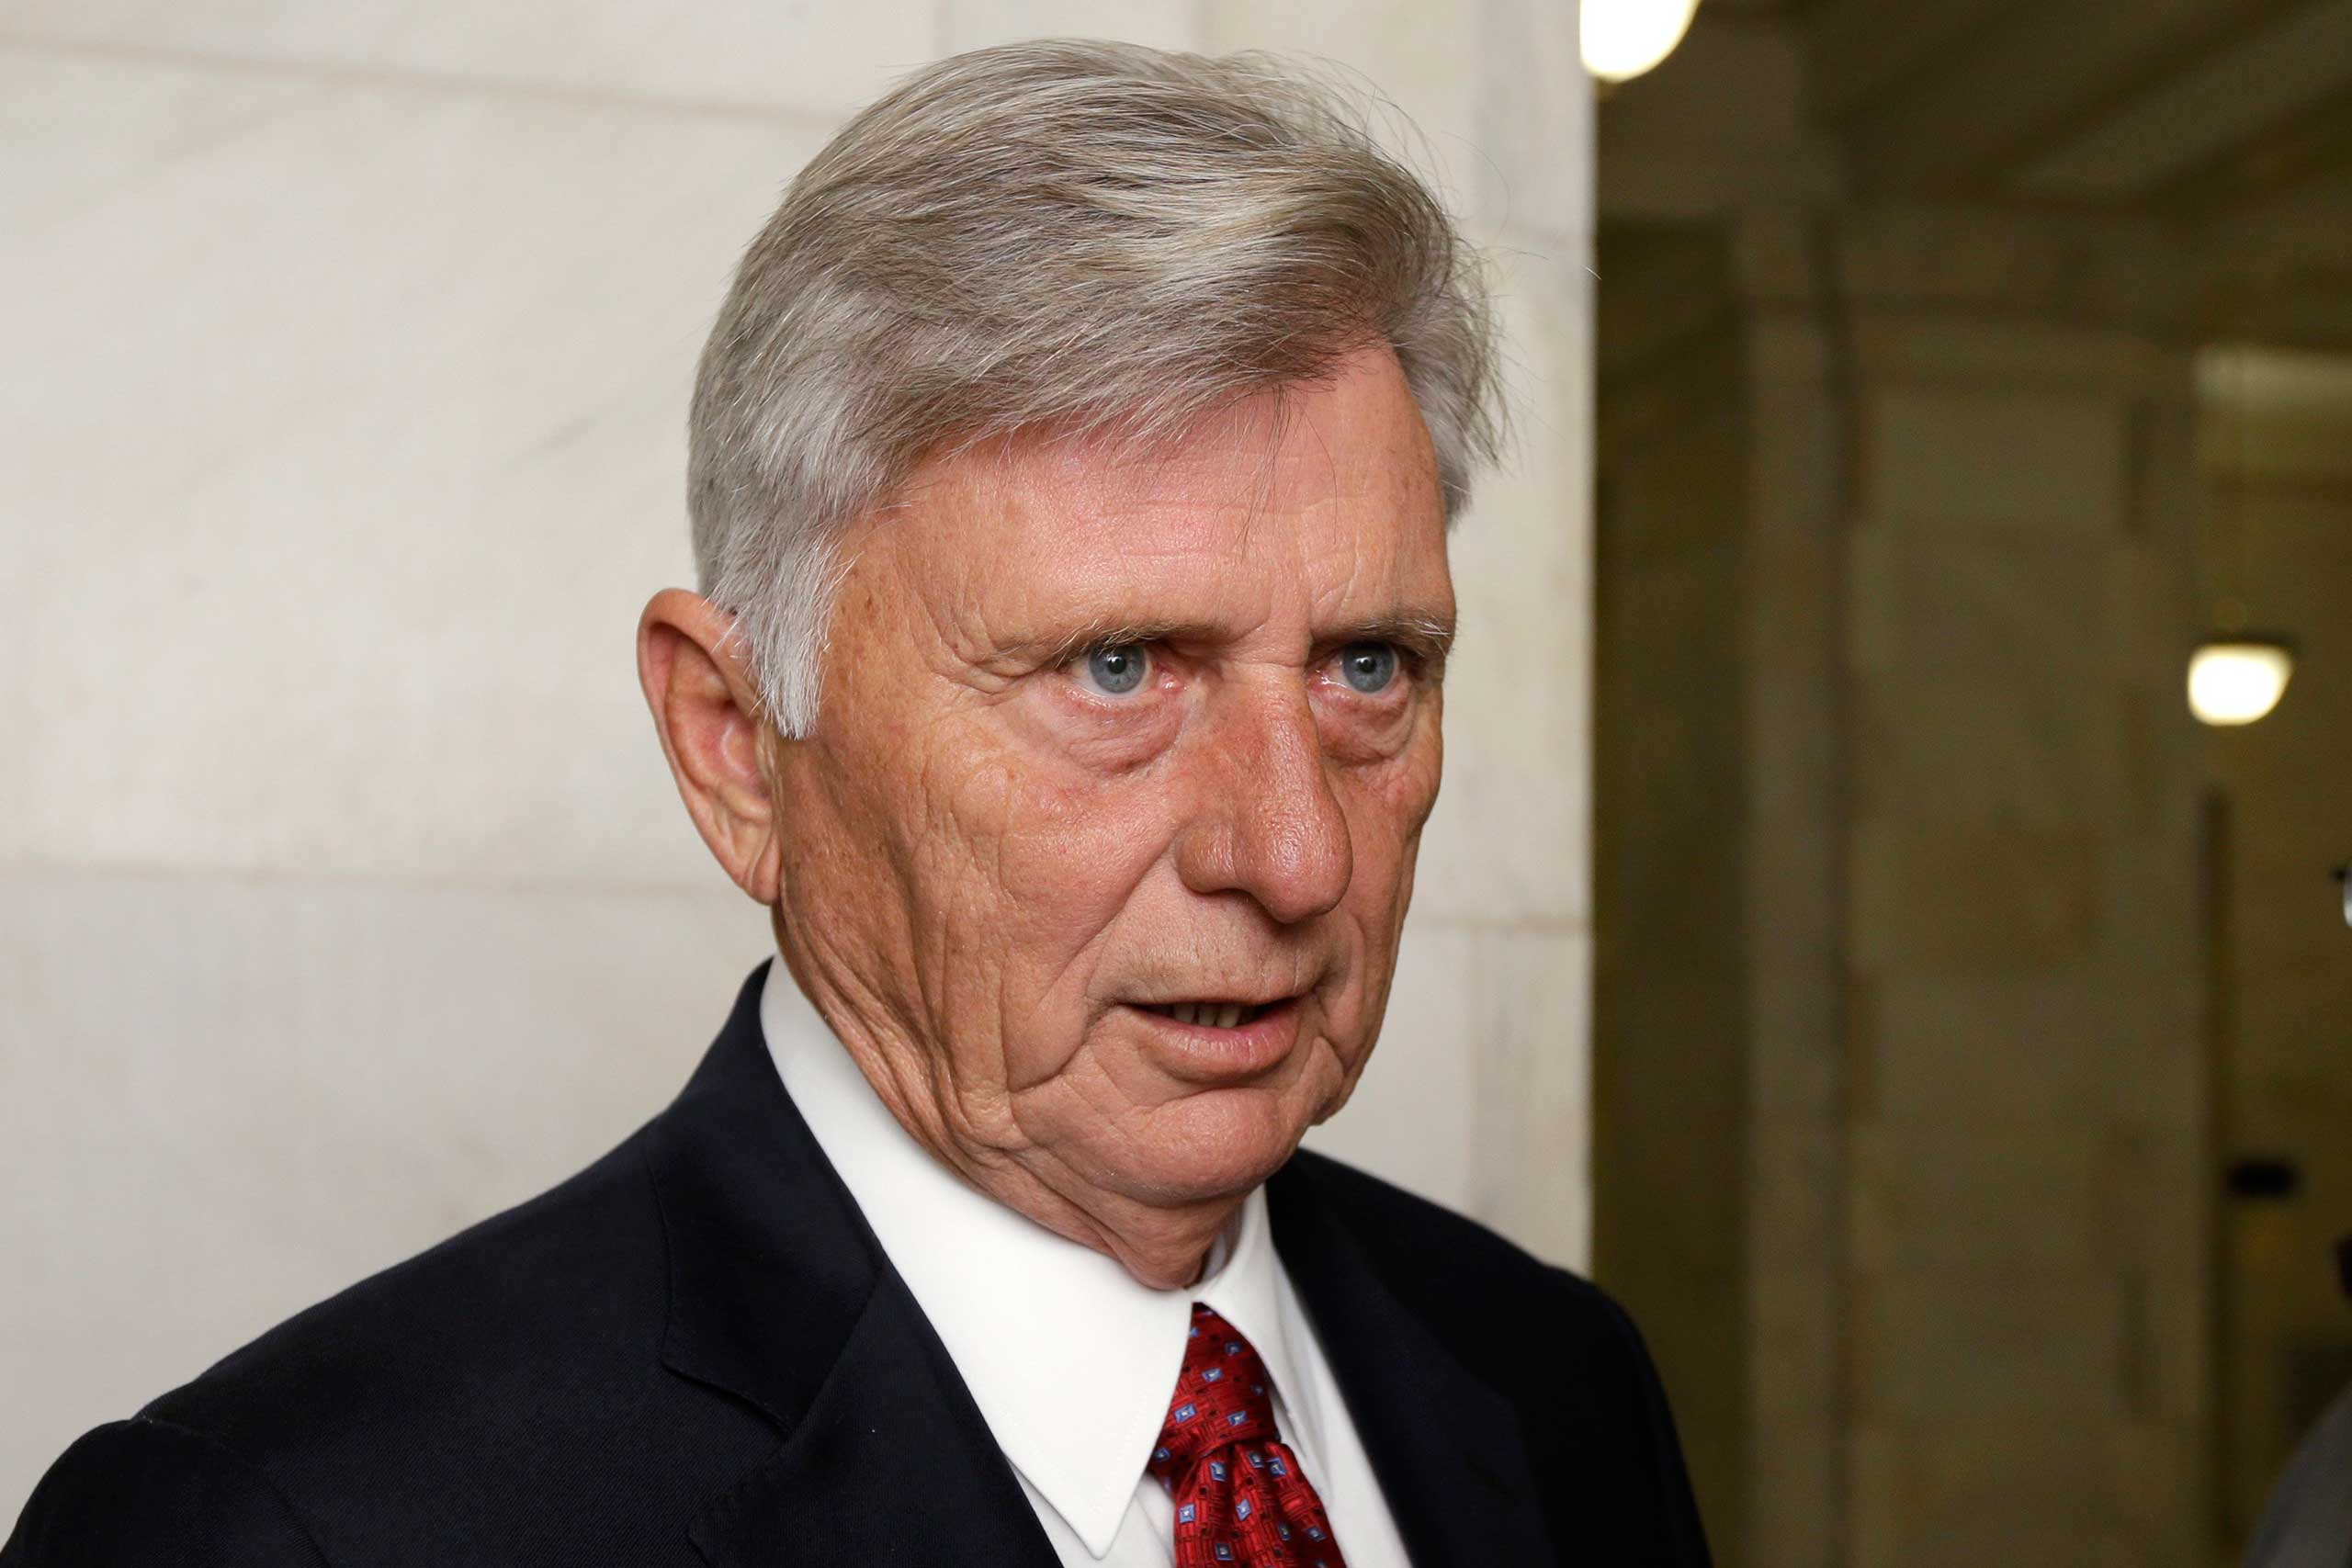 Arkansas Gov. Mike Beebe speaks to reporters at the Arkansas state Capitol in Little Rock, Ark., Nov. 5, 2014.